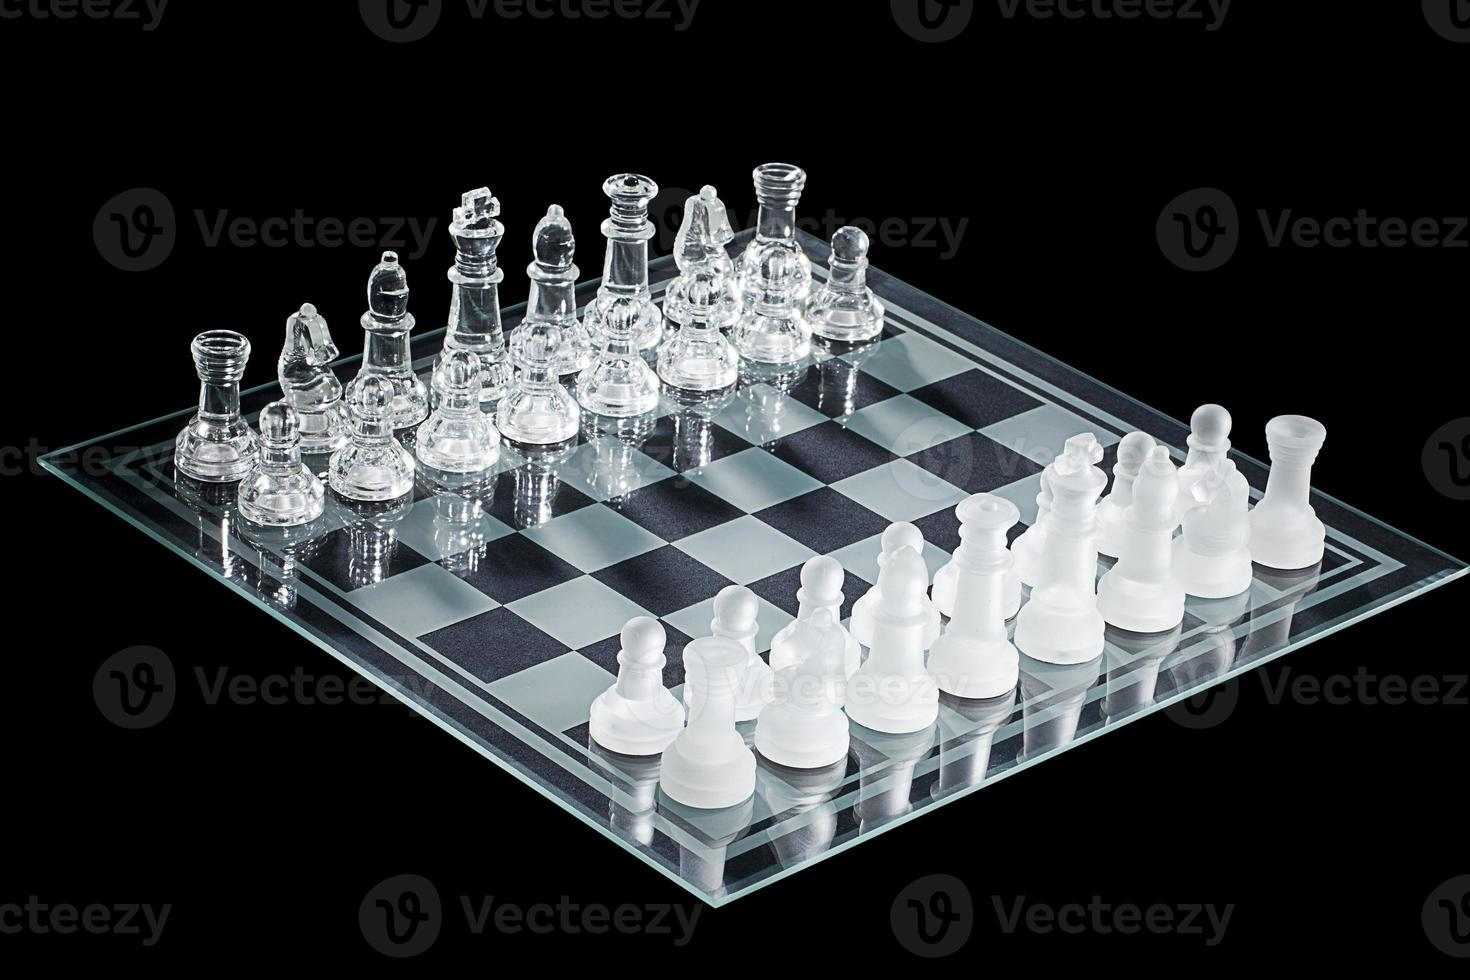 image of chess board photo